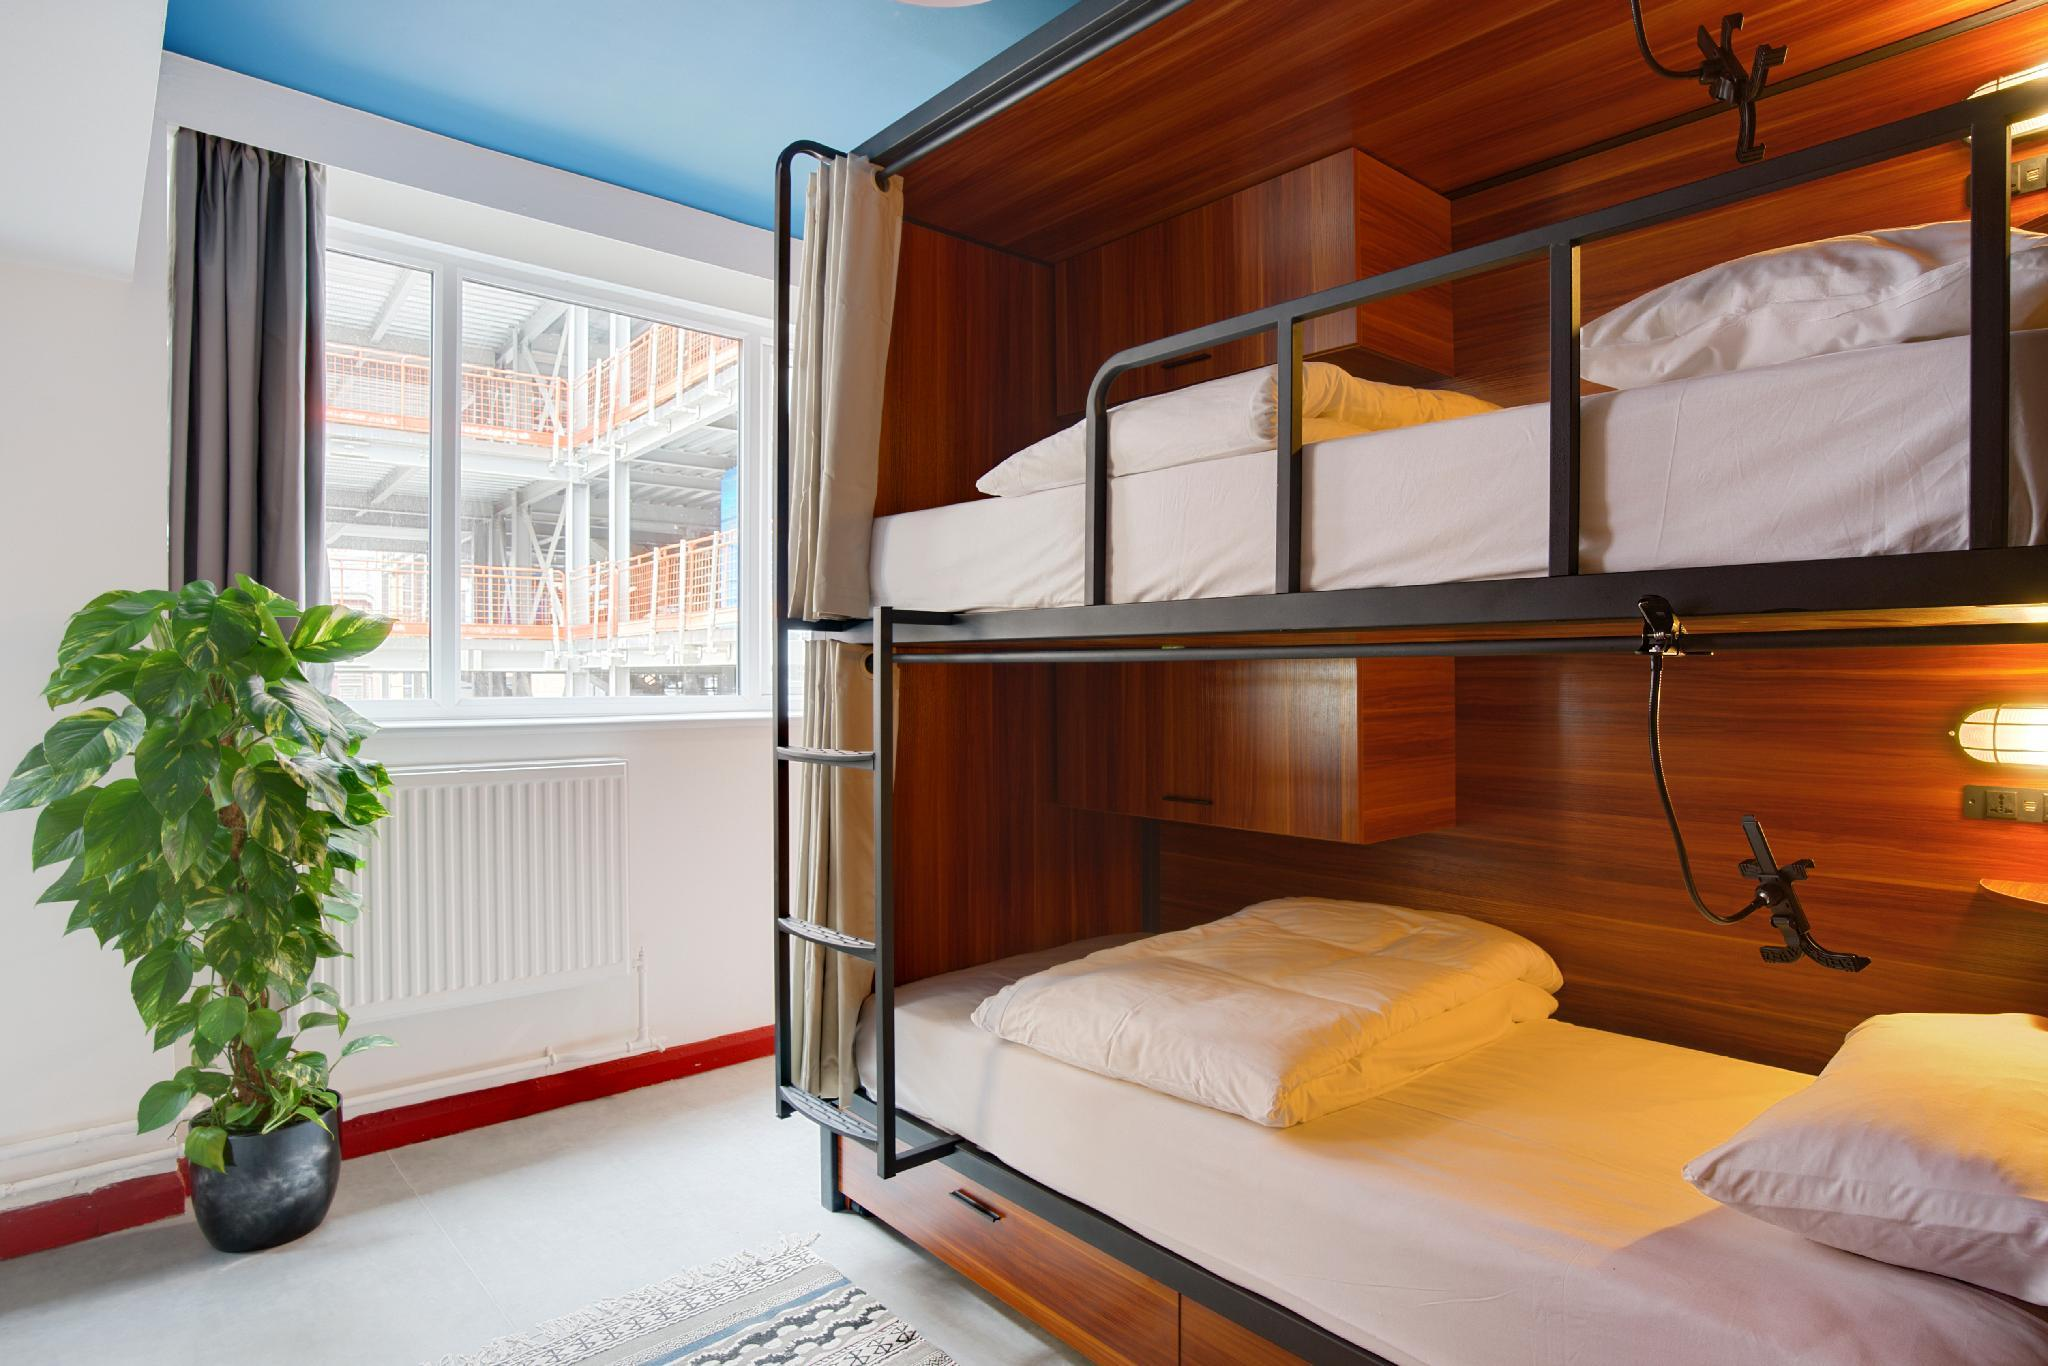 1 Bed in 6-Bed Dormitory Room